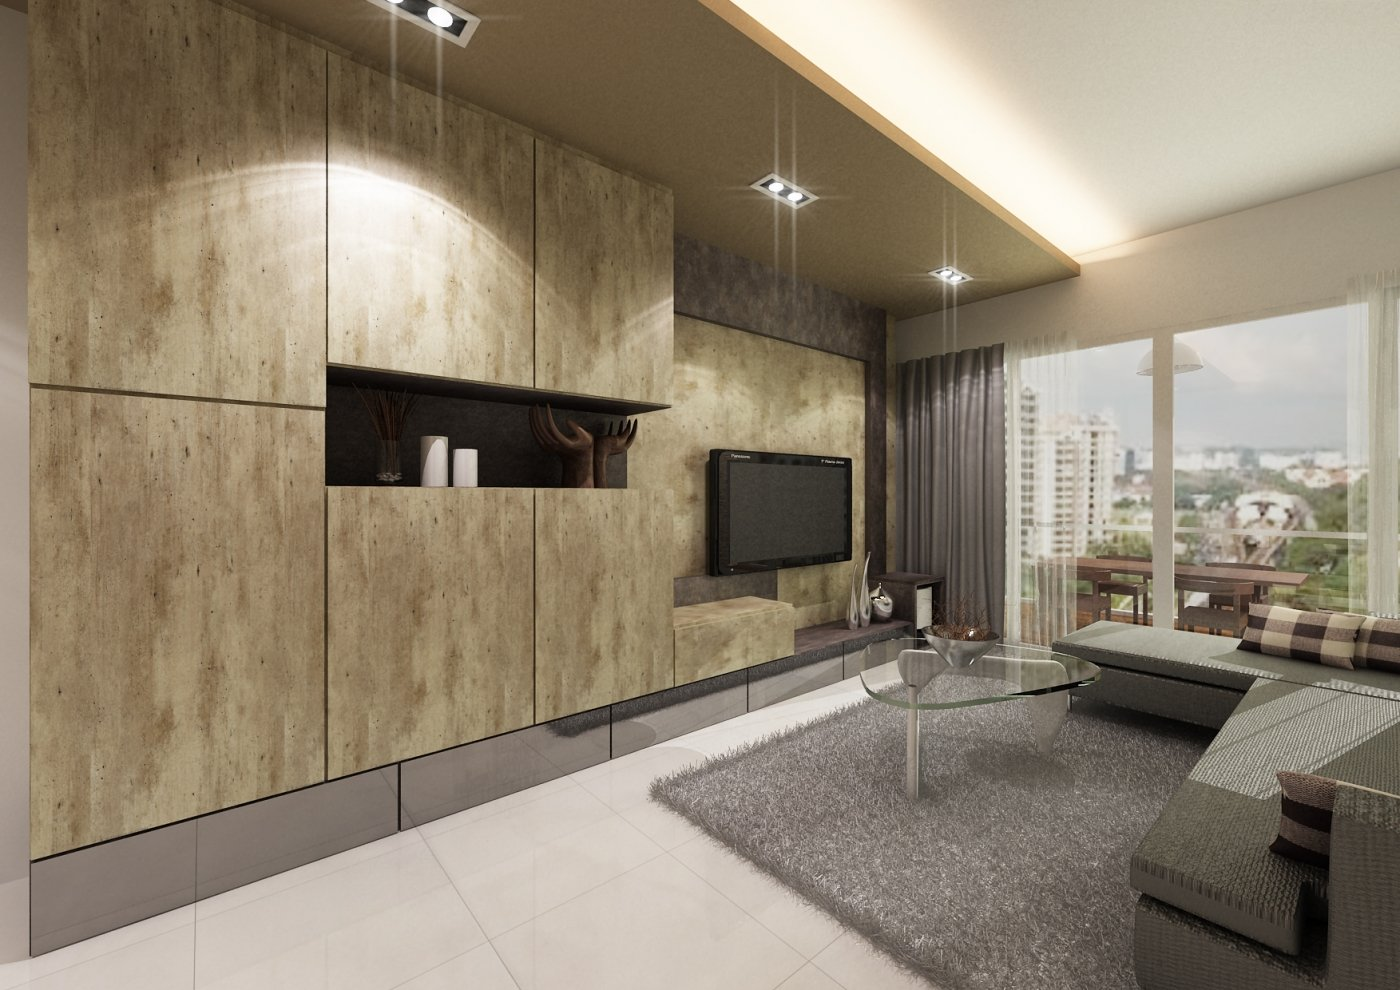 3 Of 7 Photos Pictures View Rezt Relax Interior Double Bay 3d Singapore